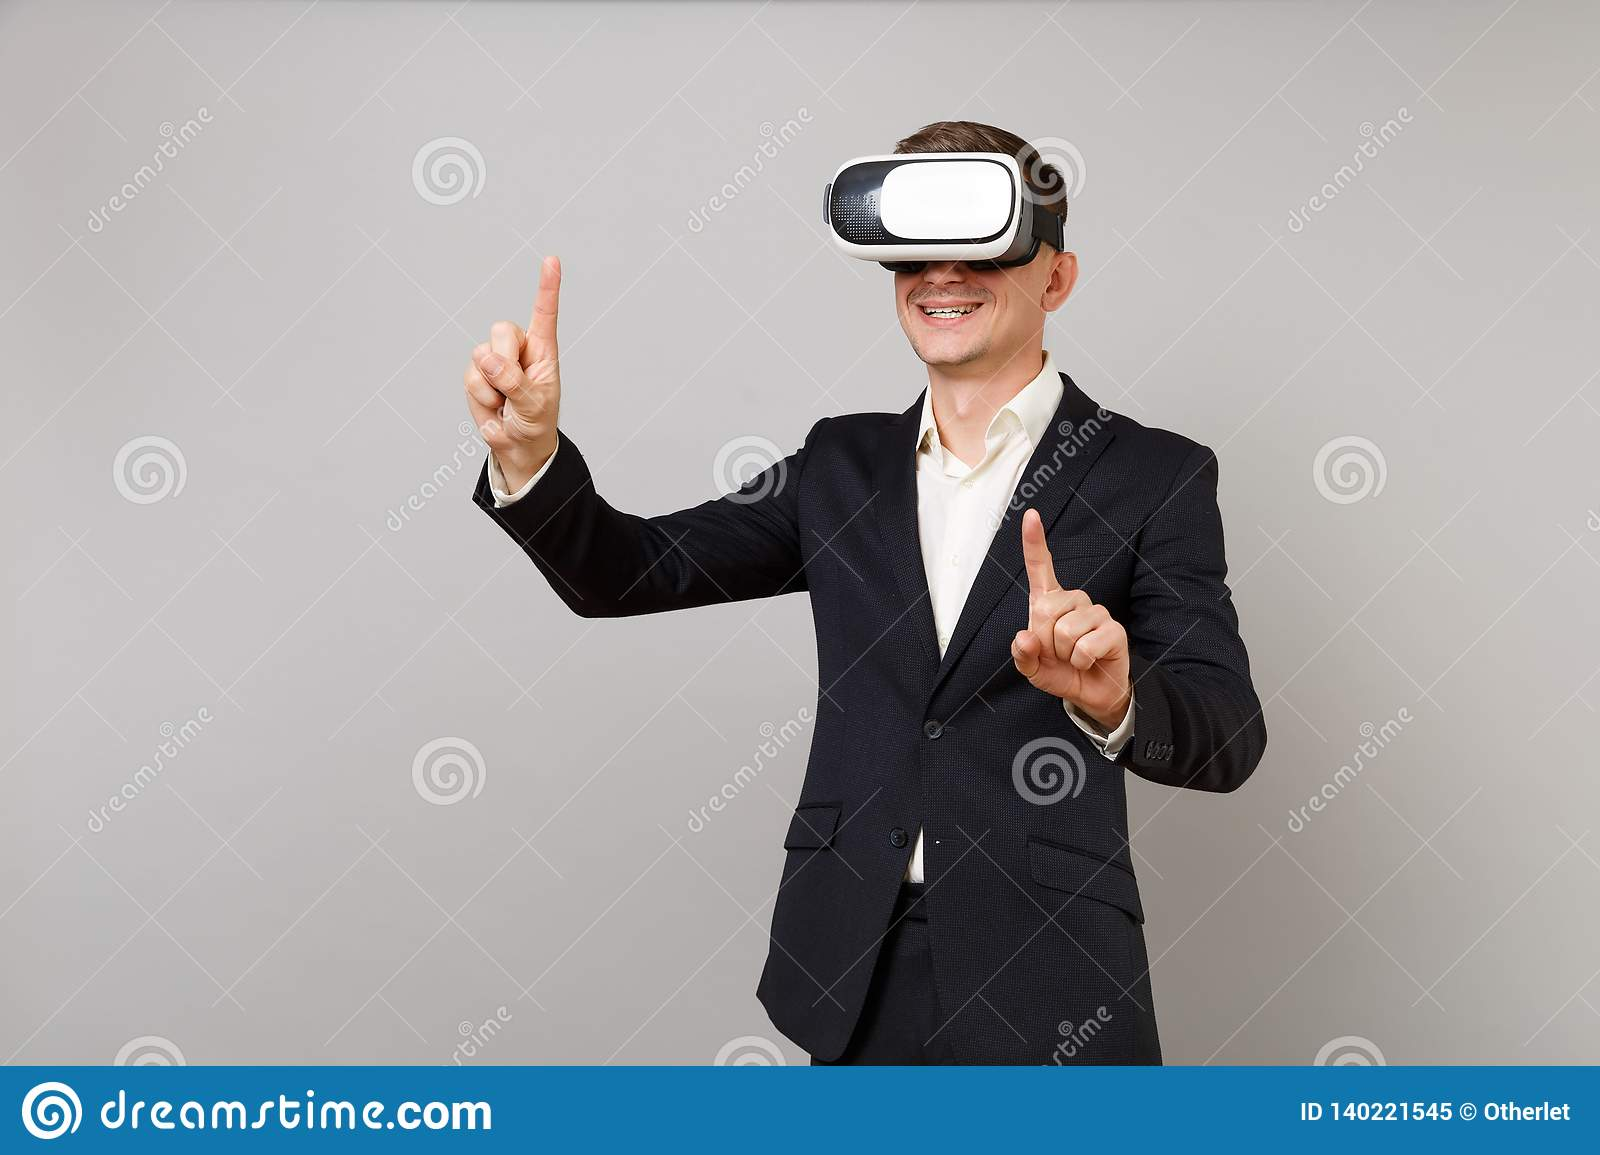 Smiling young business man looking in headset touch something like push click on button and pointing at floating virtual